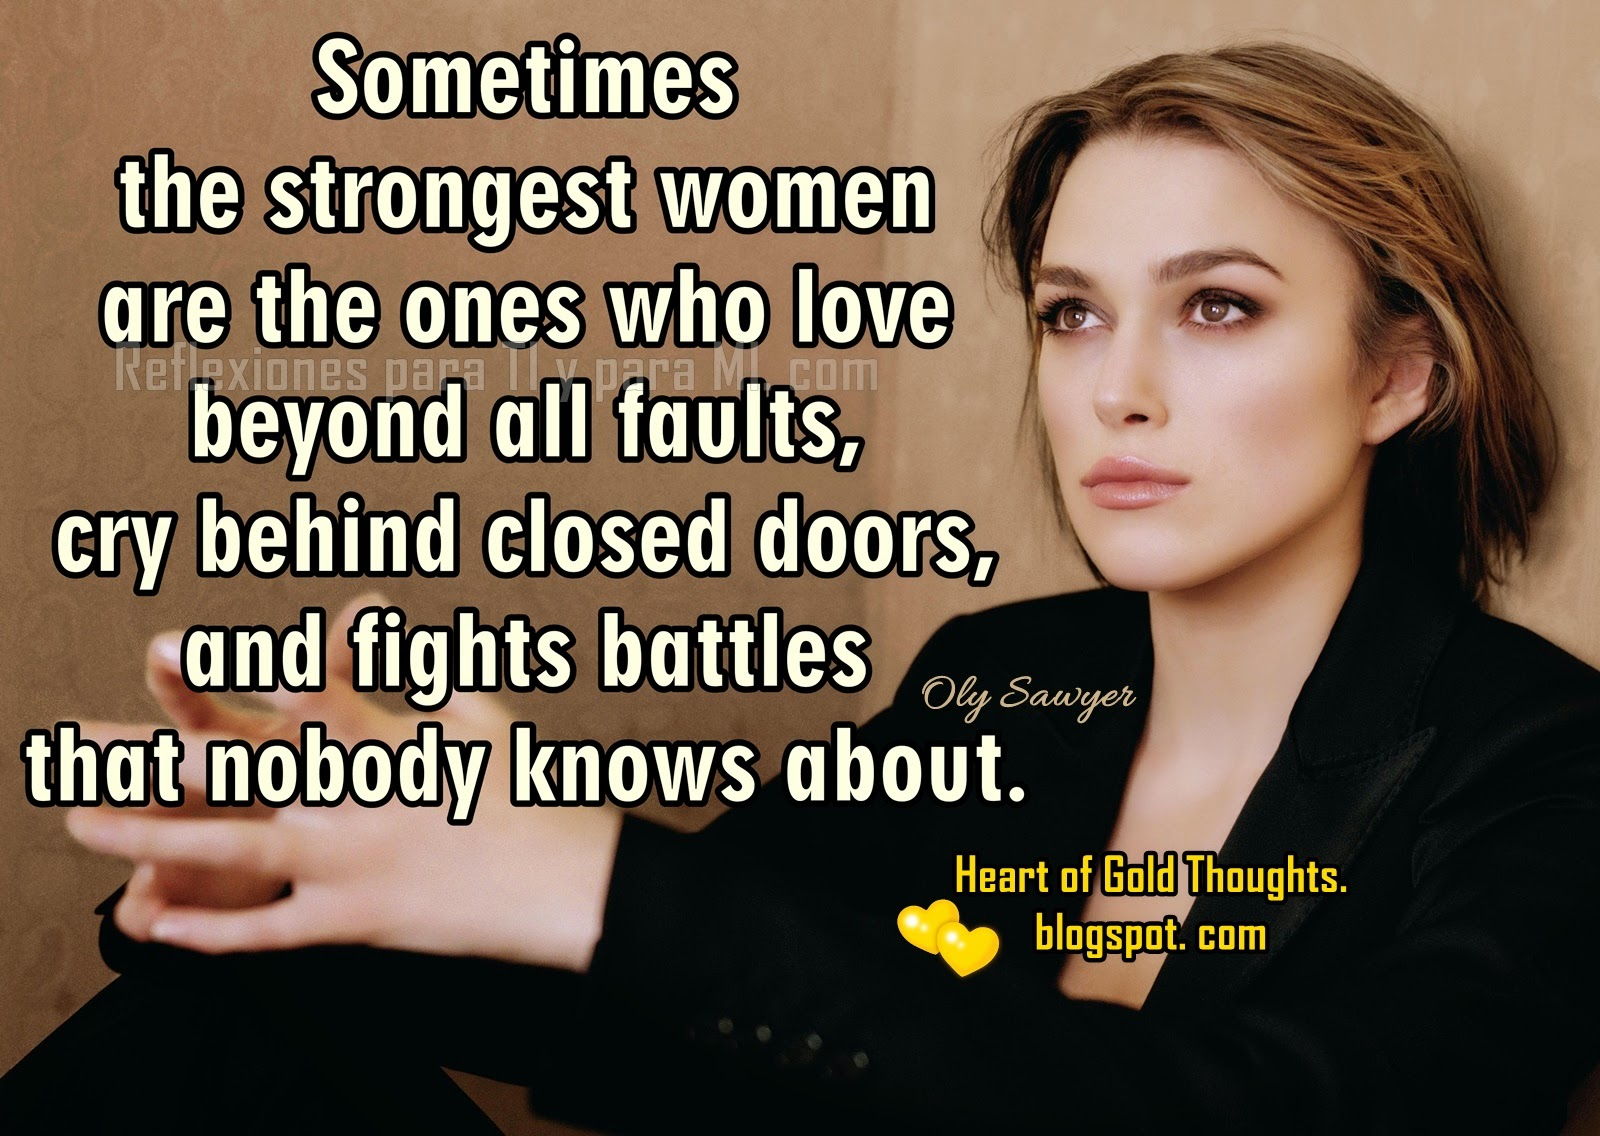 Sometimes  the strongest women are the ones  who love beyond all faults,  cry behind closed doors,  and fights battles that nobody knows about.